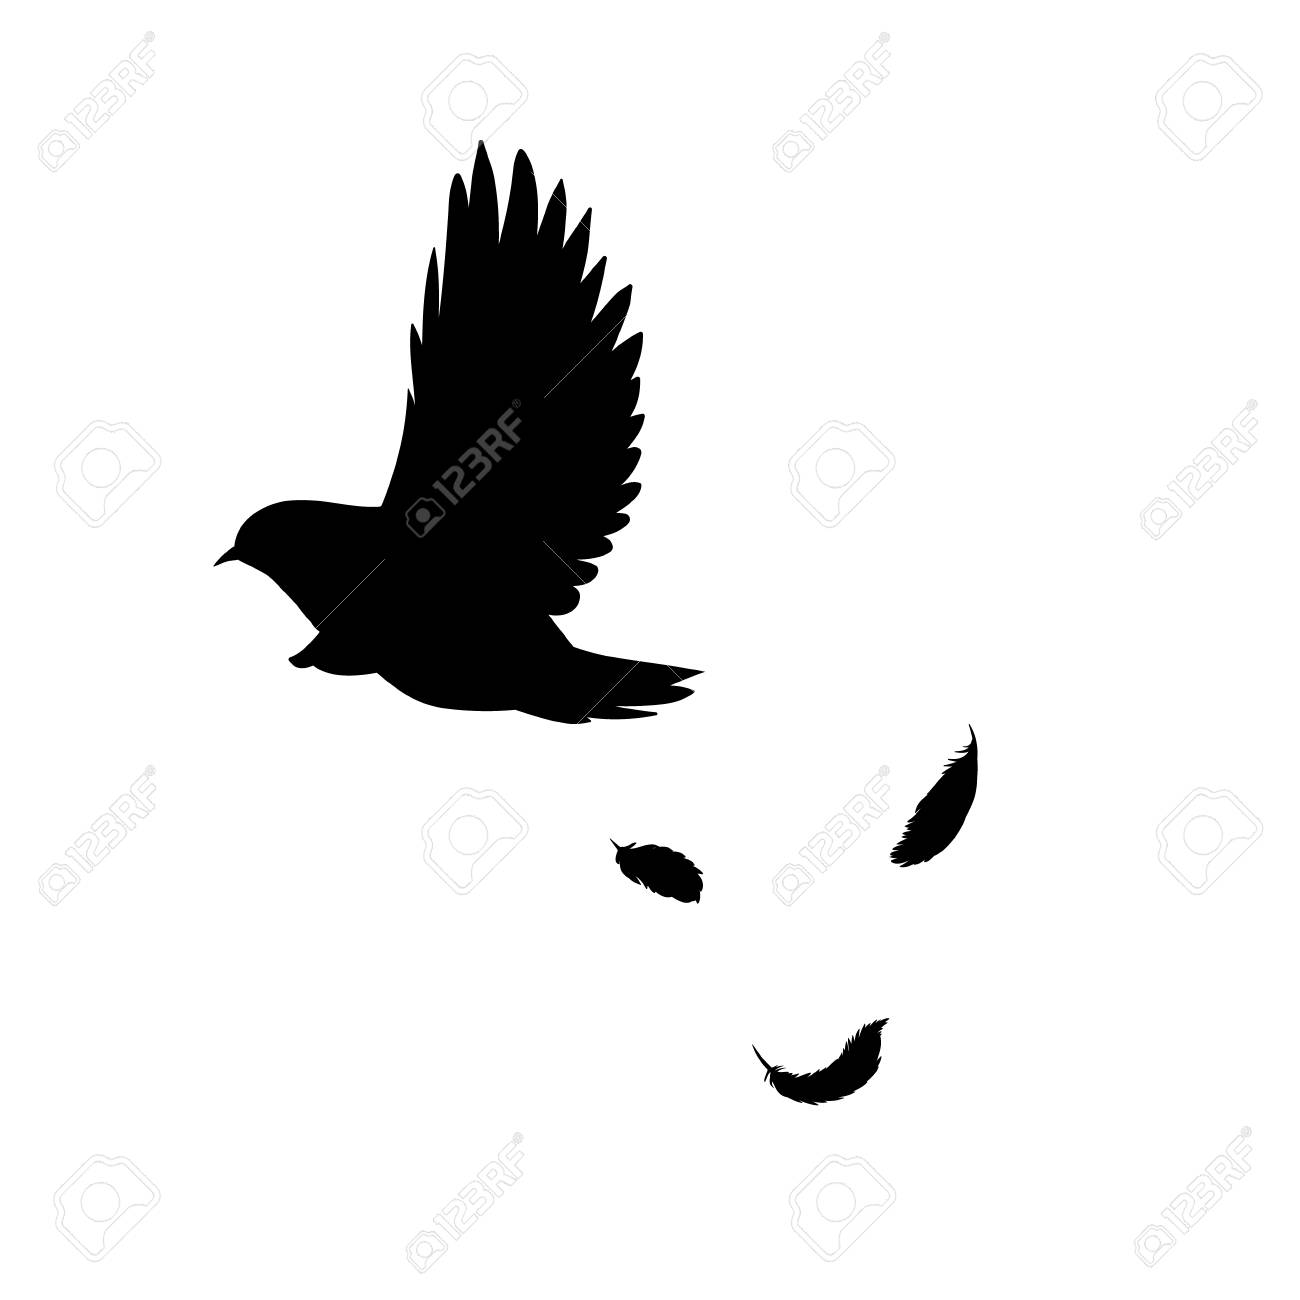 black flying bird silhouette concept with falling feathers in